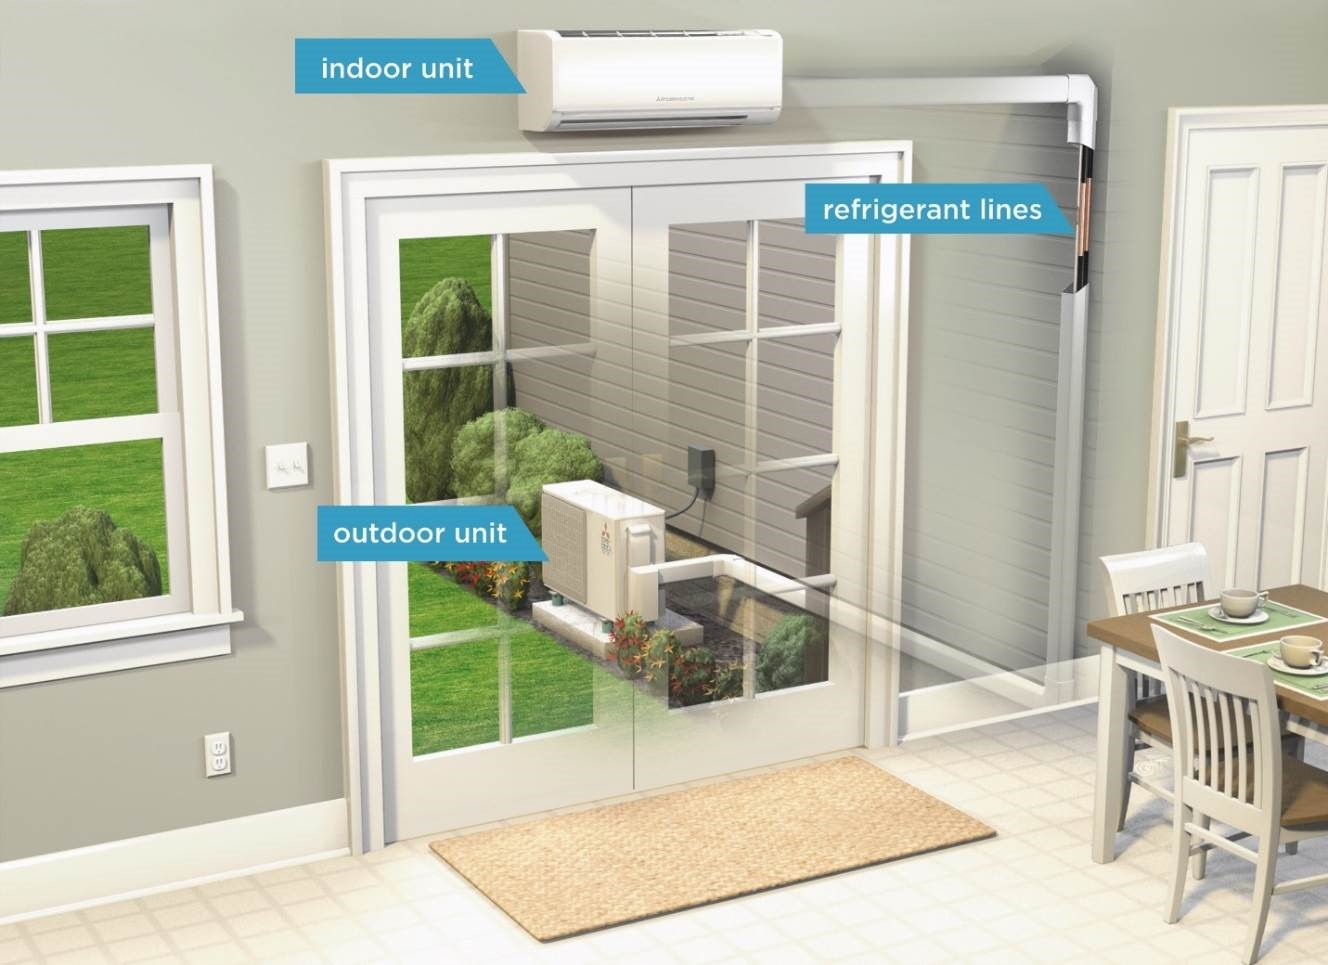 Ductless heeating: Inside unit connected to outside unit through refrigerant lines.